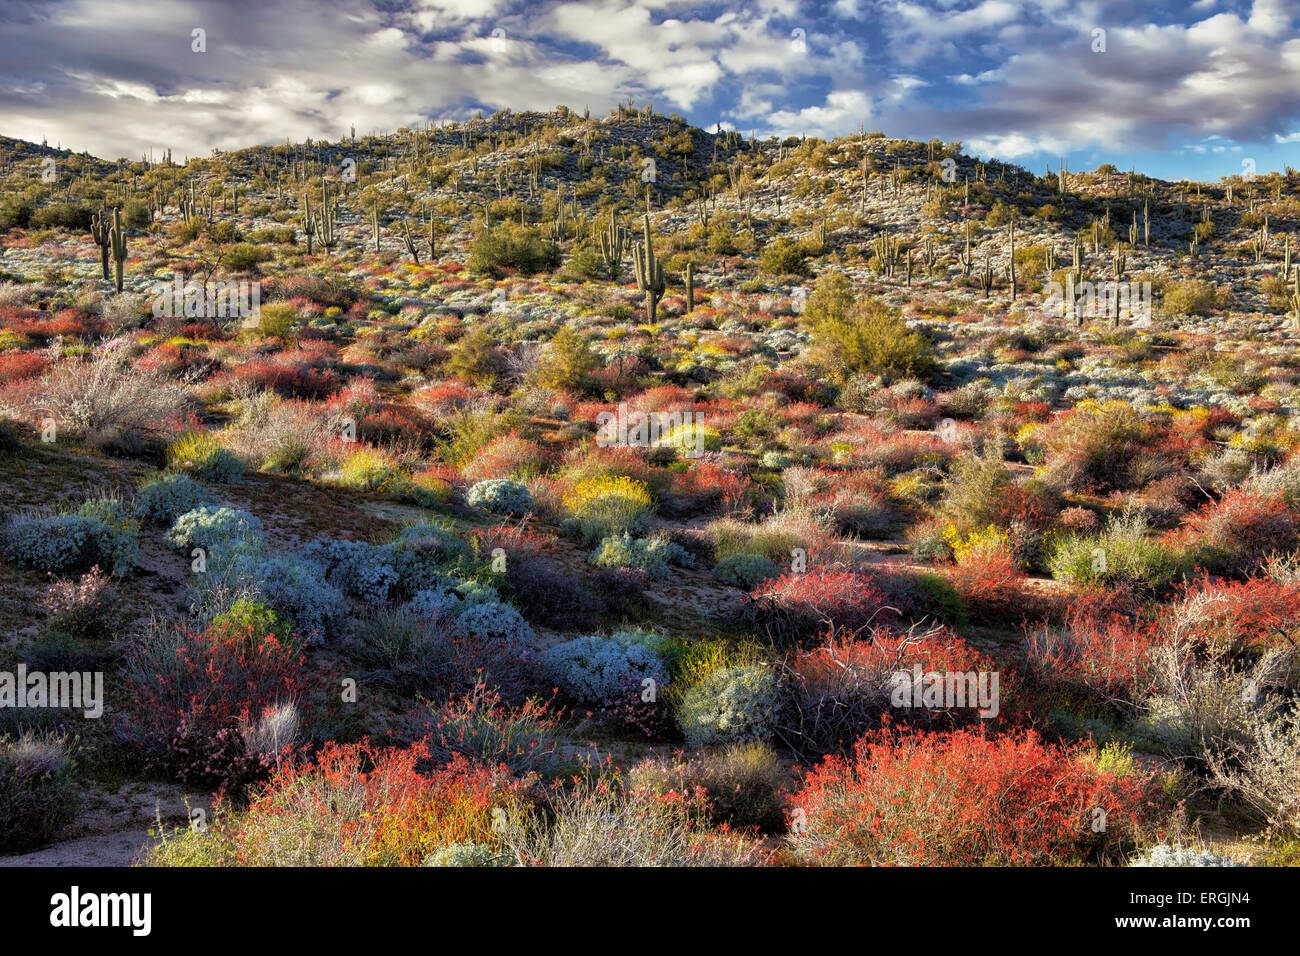 Red chuparosa dominate the spring bloom on the hills of the Tonto National Forest near Bartlett Lake, Arizona. - Stock Image